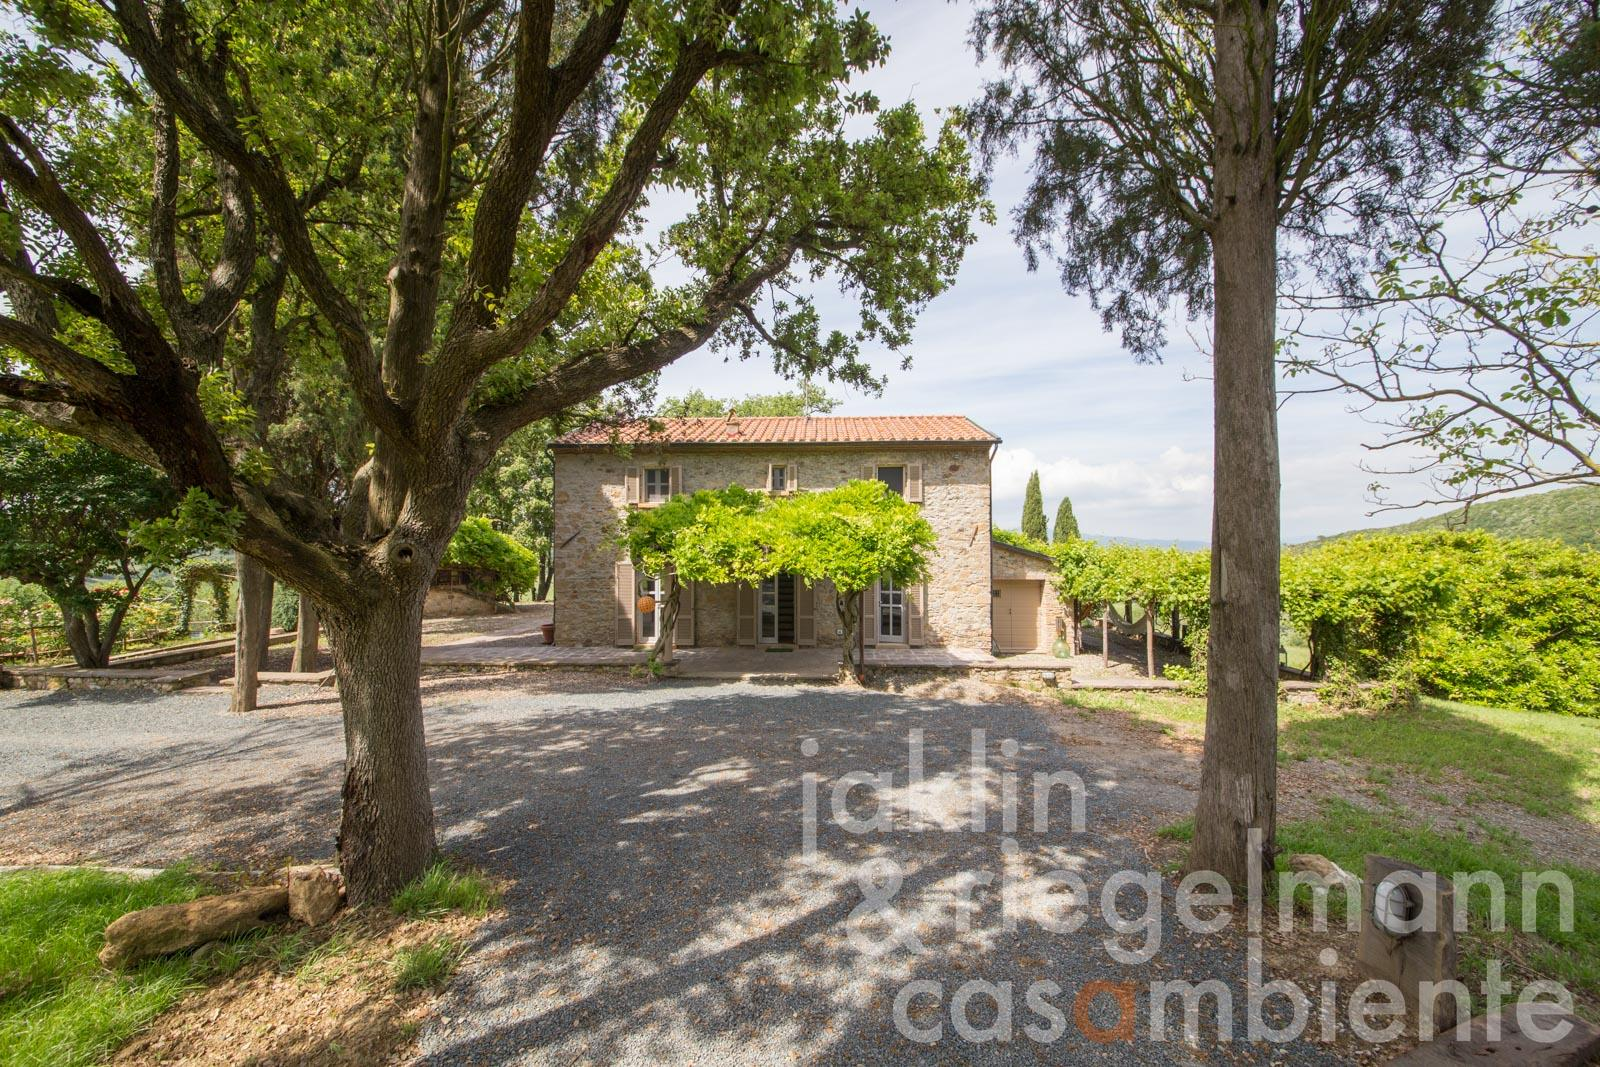 Modernly restored stone-built house for sale in quiet panoramic position in Tuscany near the Tyrrhenian Sea